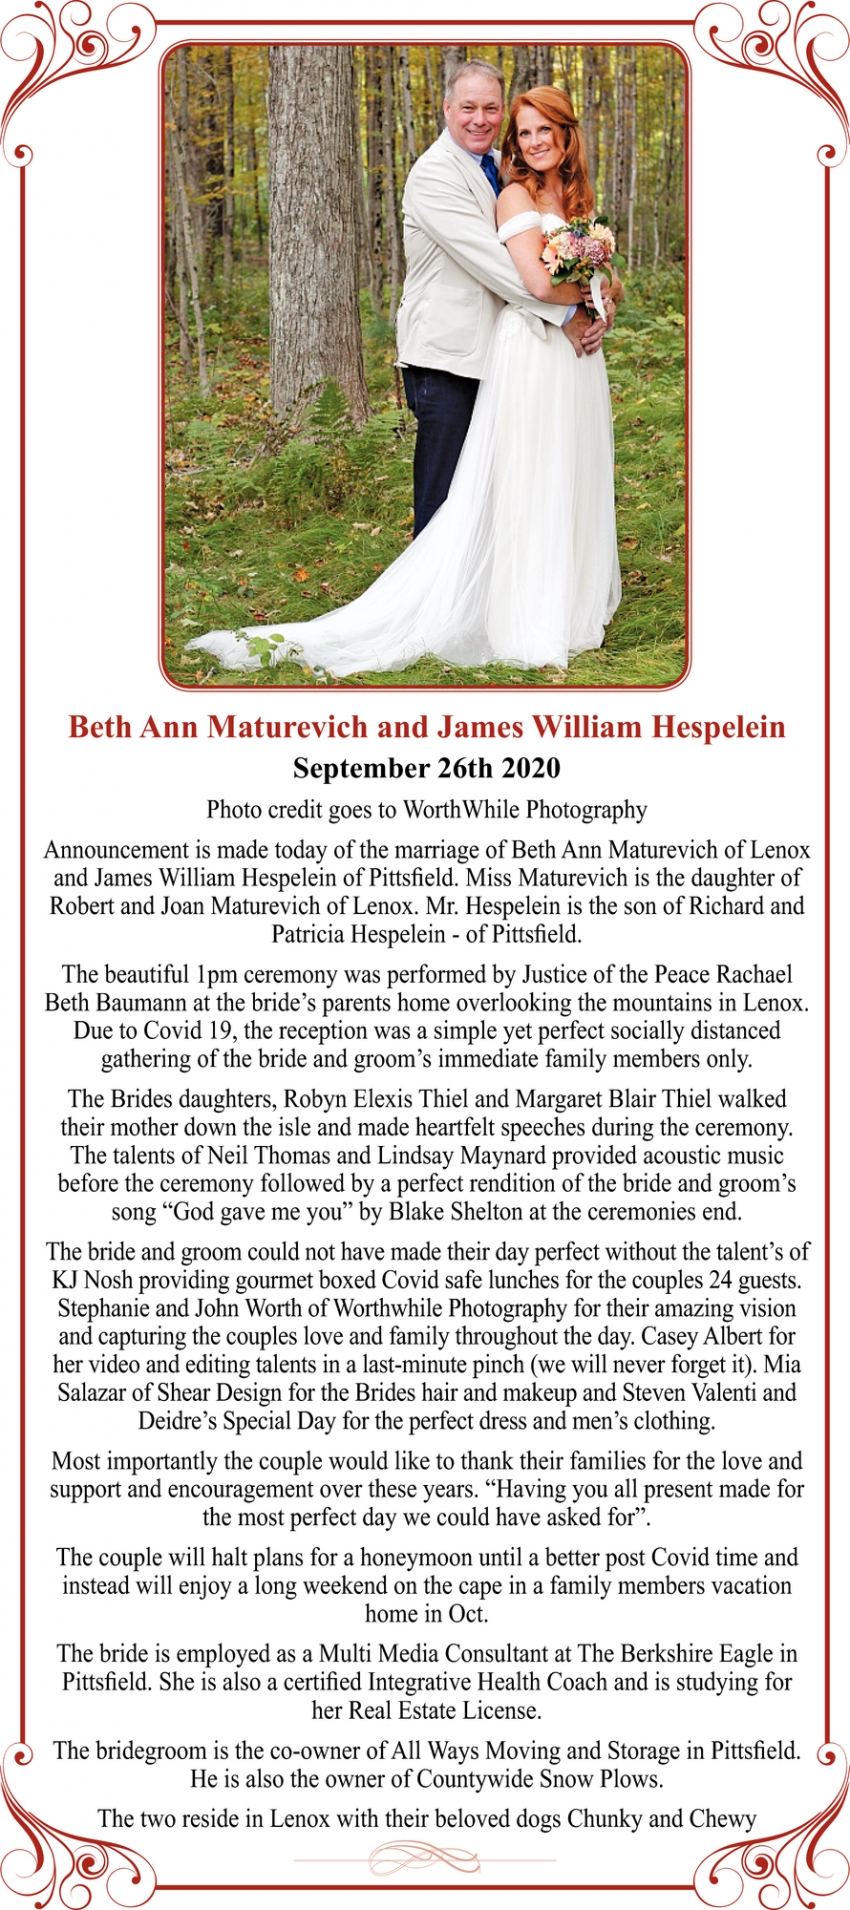 Beth Ann Maturevich and James William Hespelein